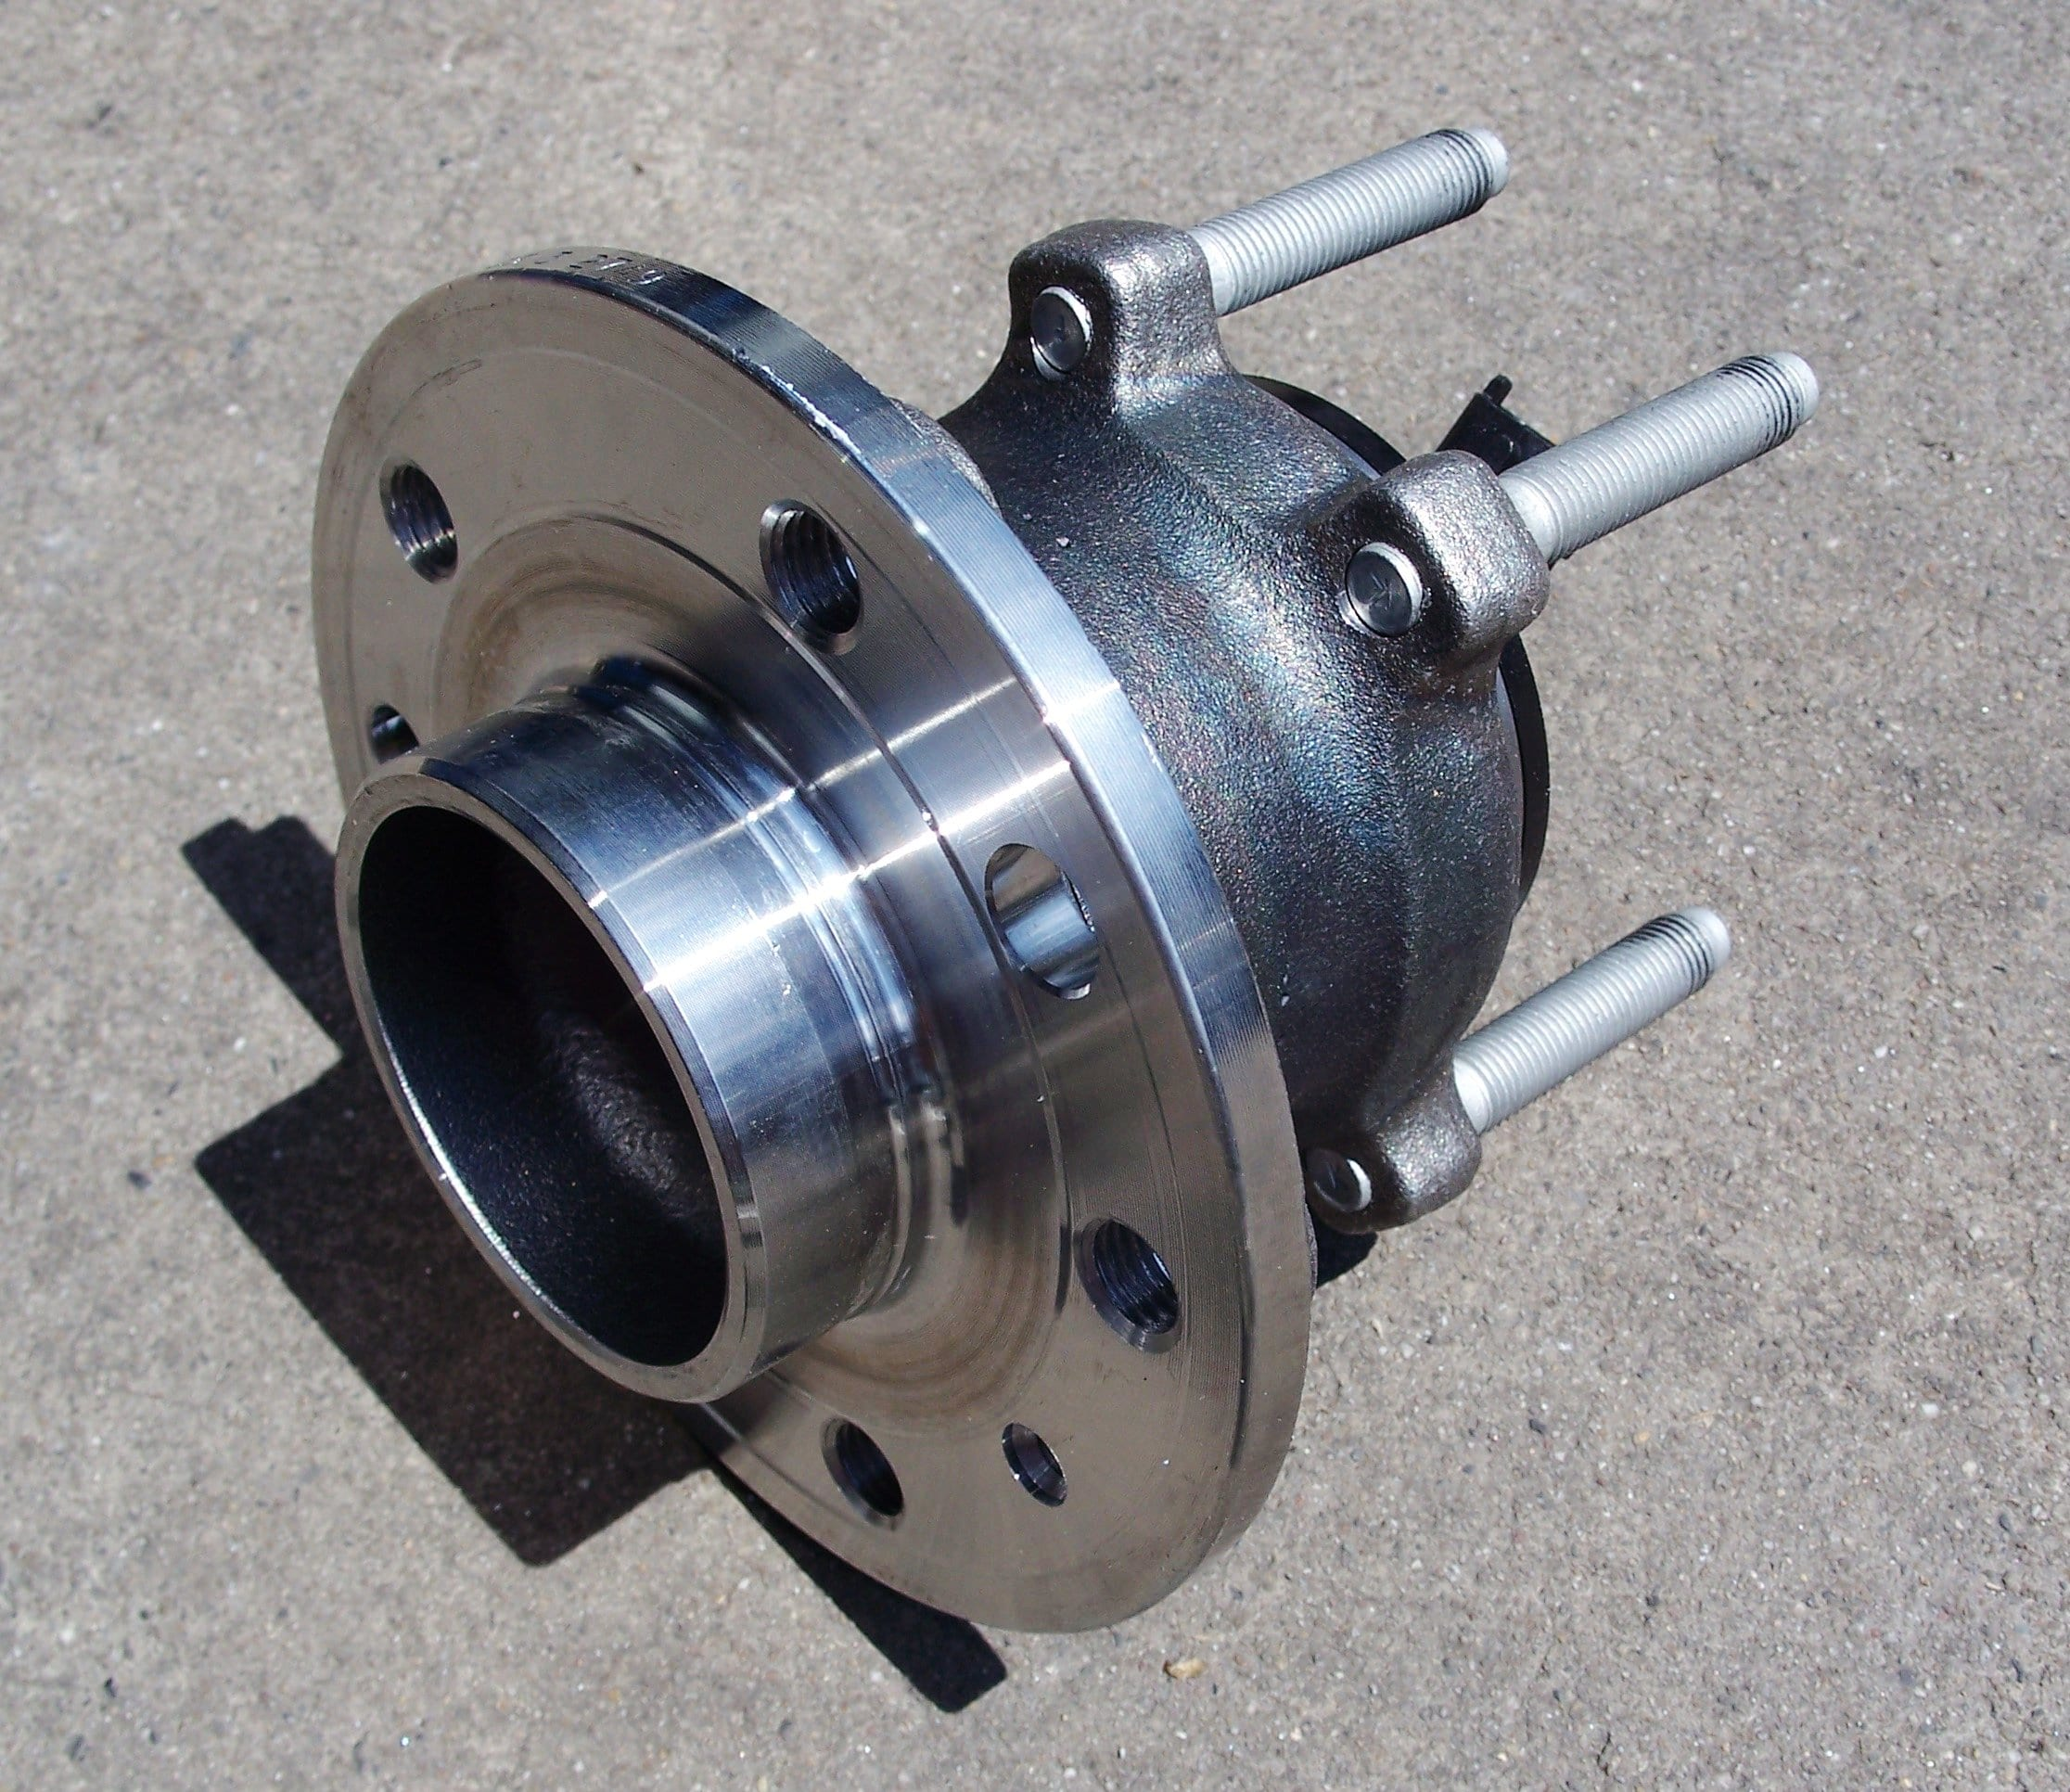 Sealed Hub Bearing Assemblies Make Bearing Inspections Complicated